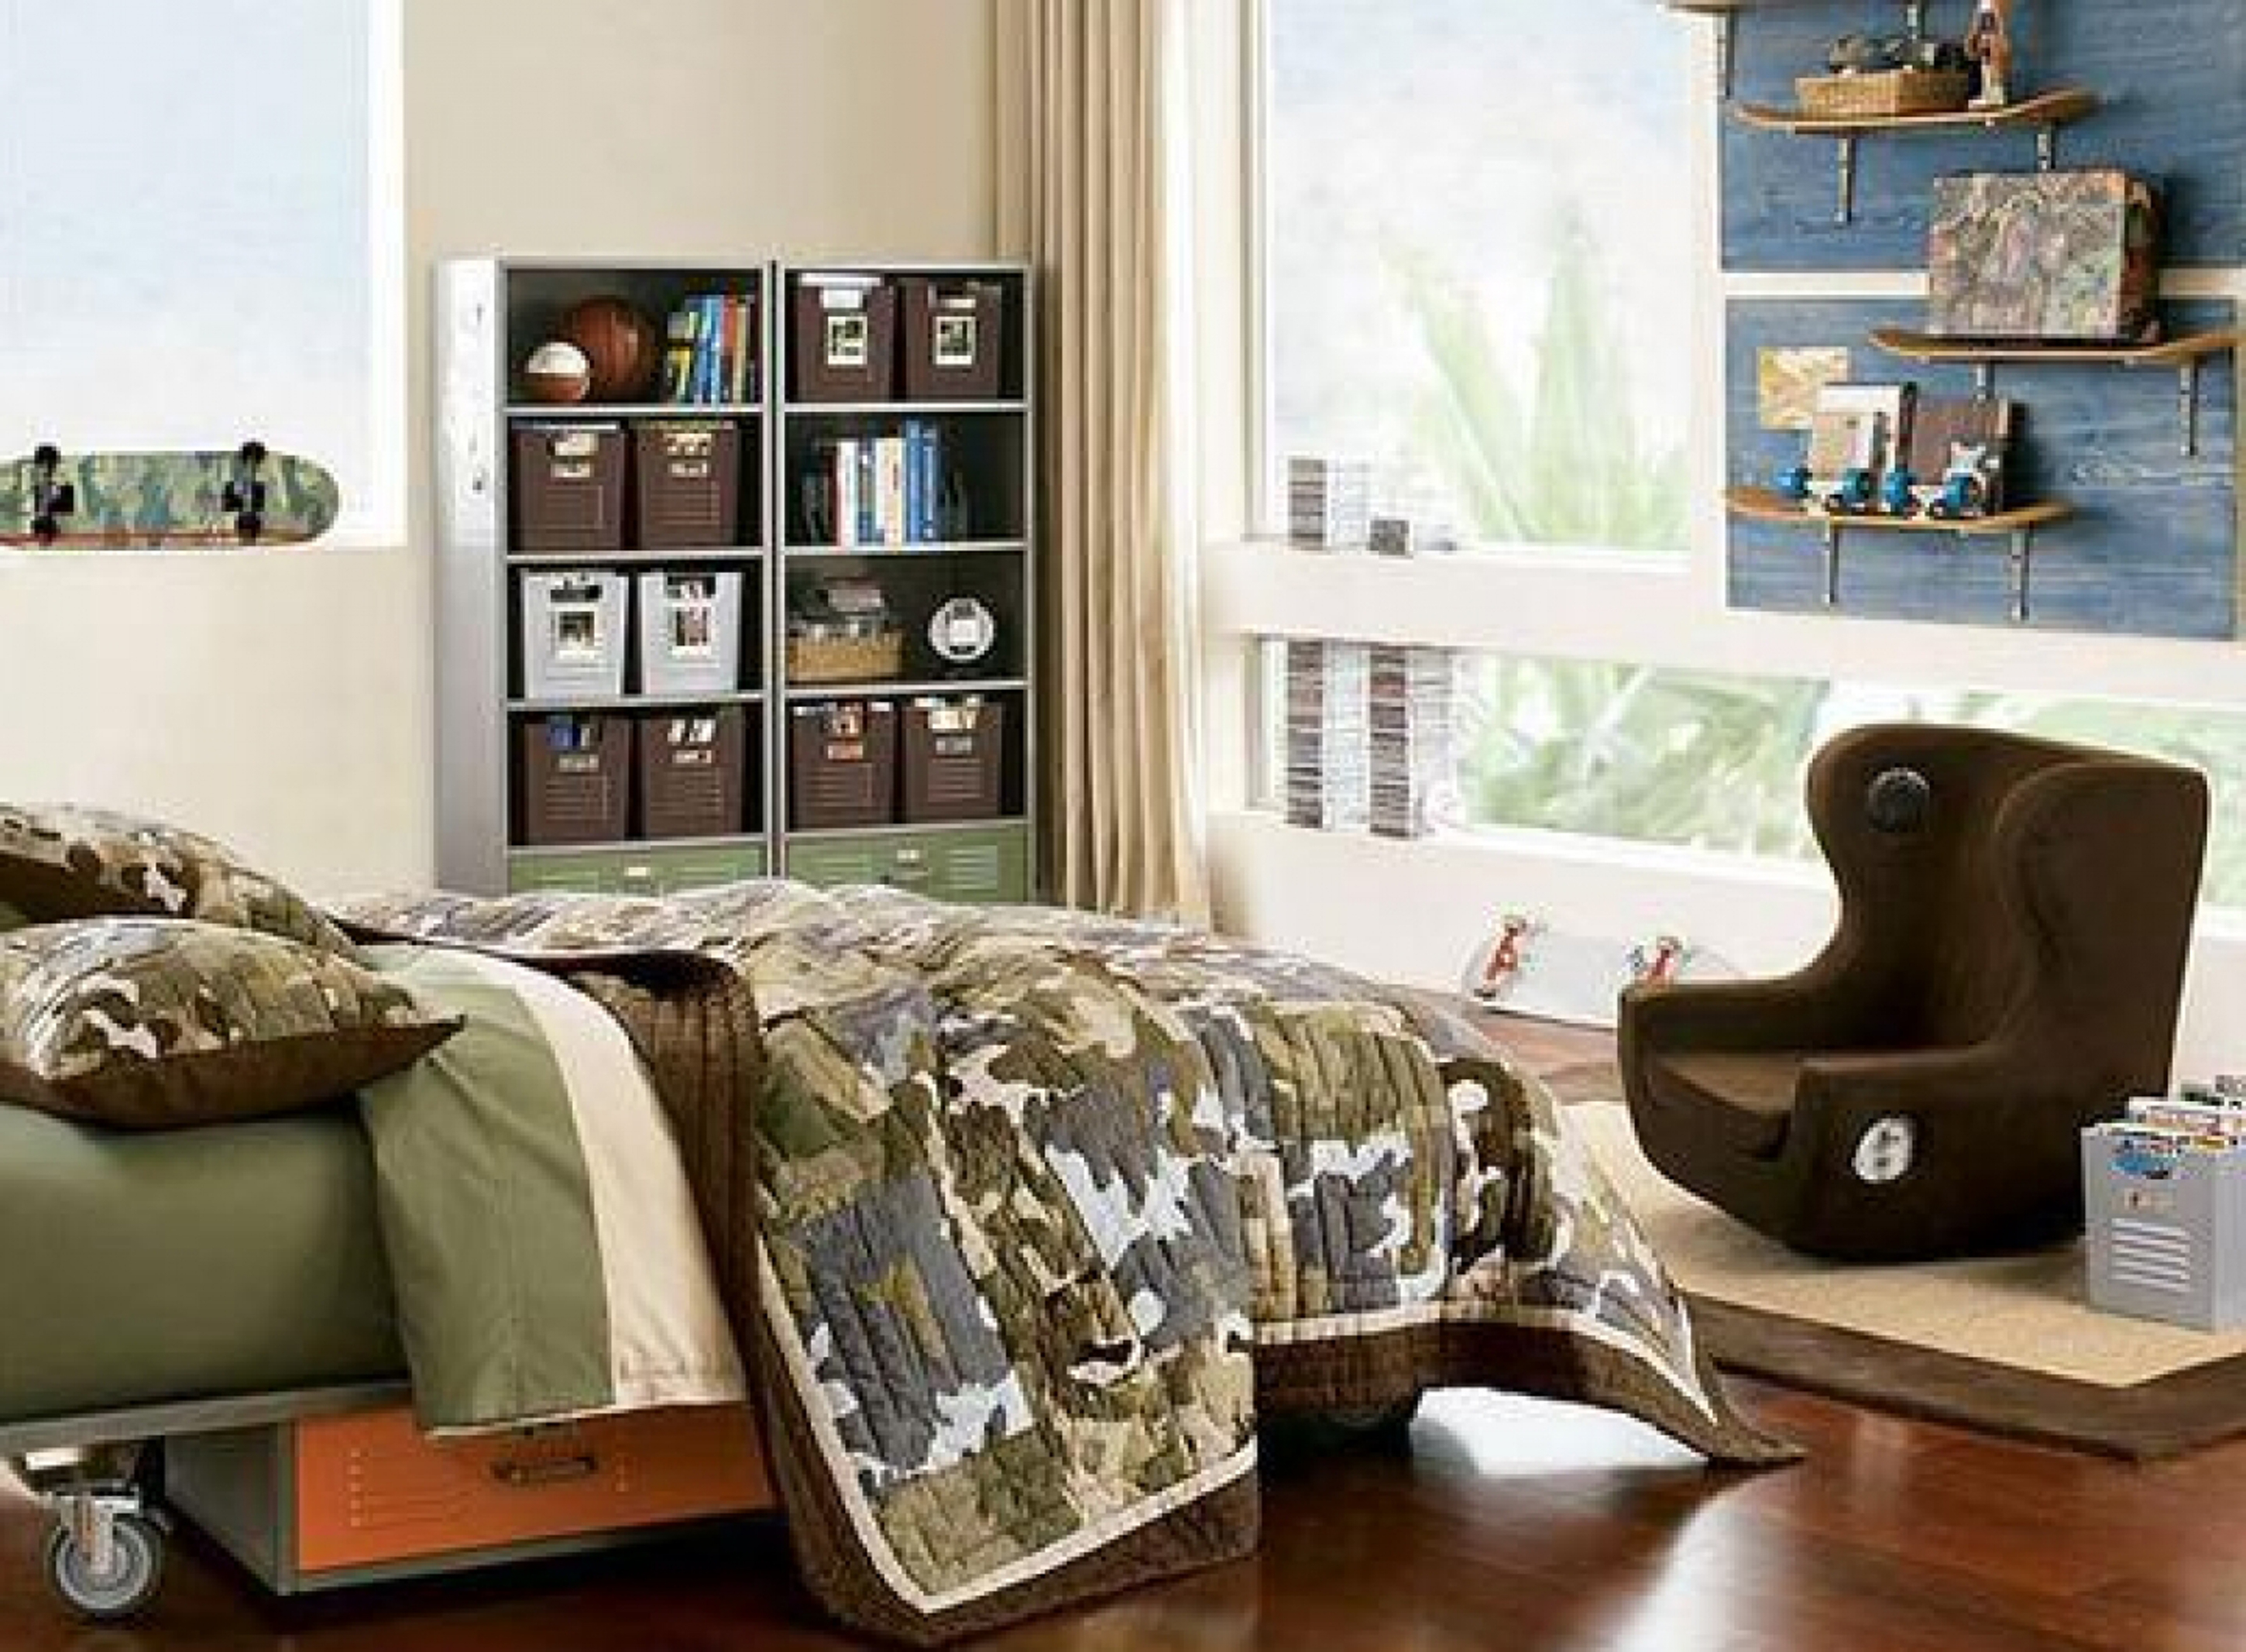 Kids Bedroom Fabulous Boys Bedroom Decoration Idea With Green Bed Cover Chocolate Armchair And White Wall Impressive Boys Bedroom Decoration Ideas (Image 13 of 28)